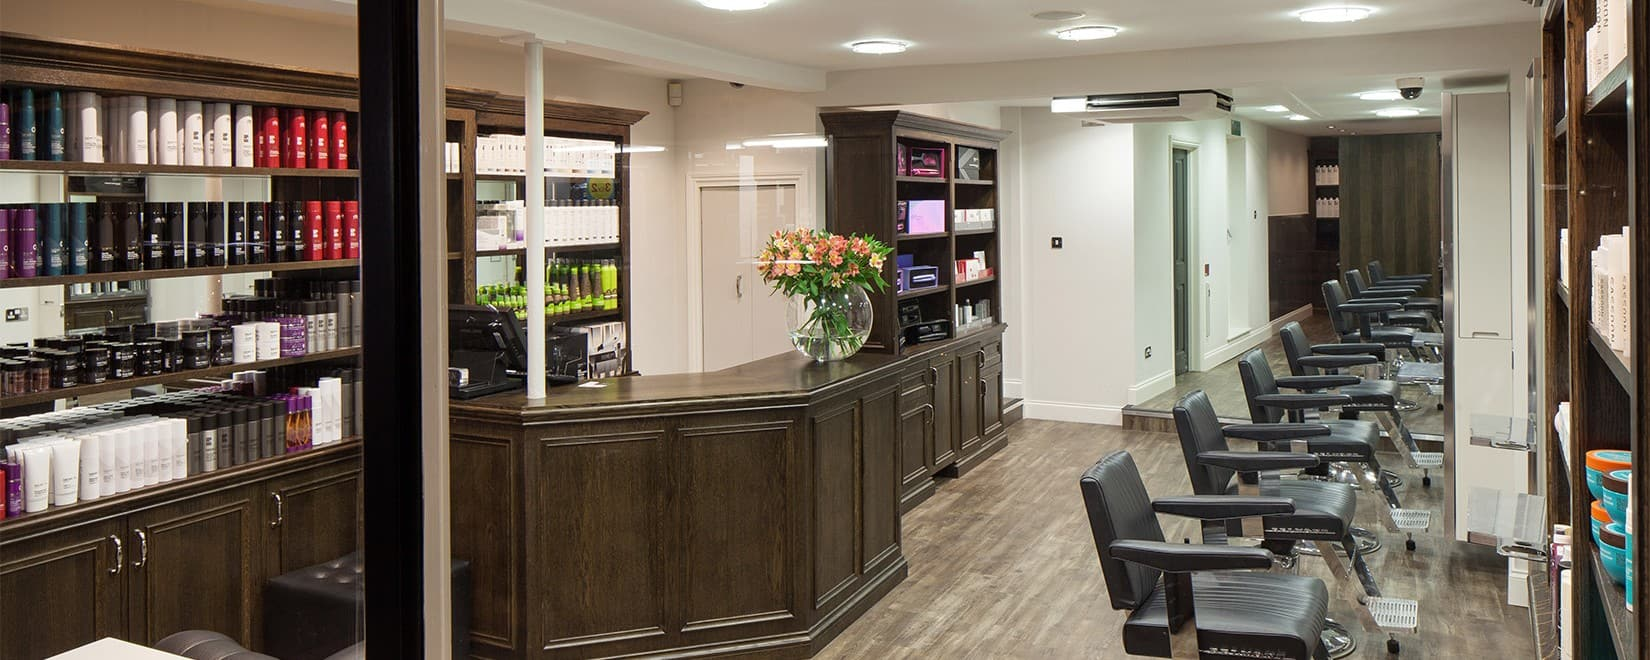 M Salons - Hairdressers Bishops Stortford - Interior Reception